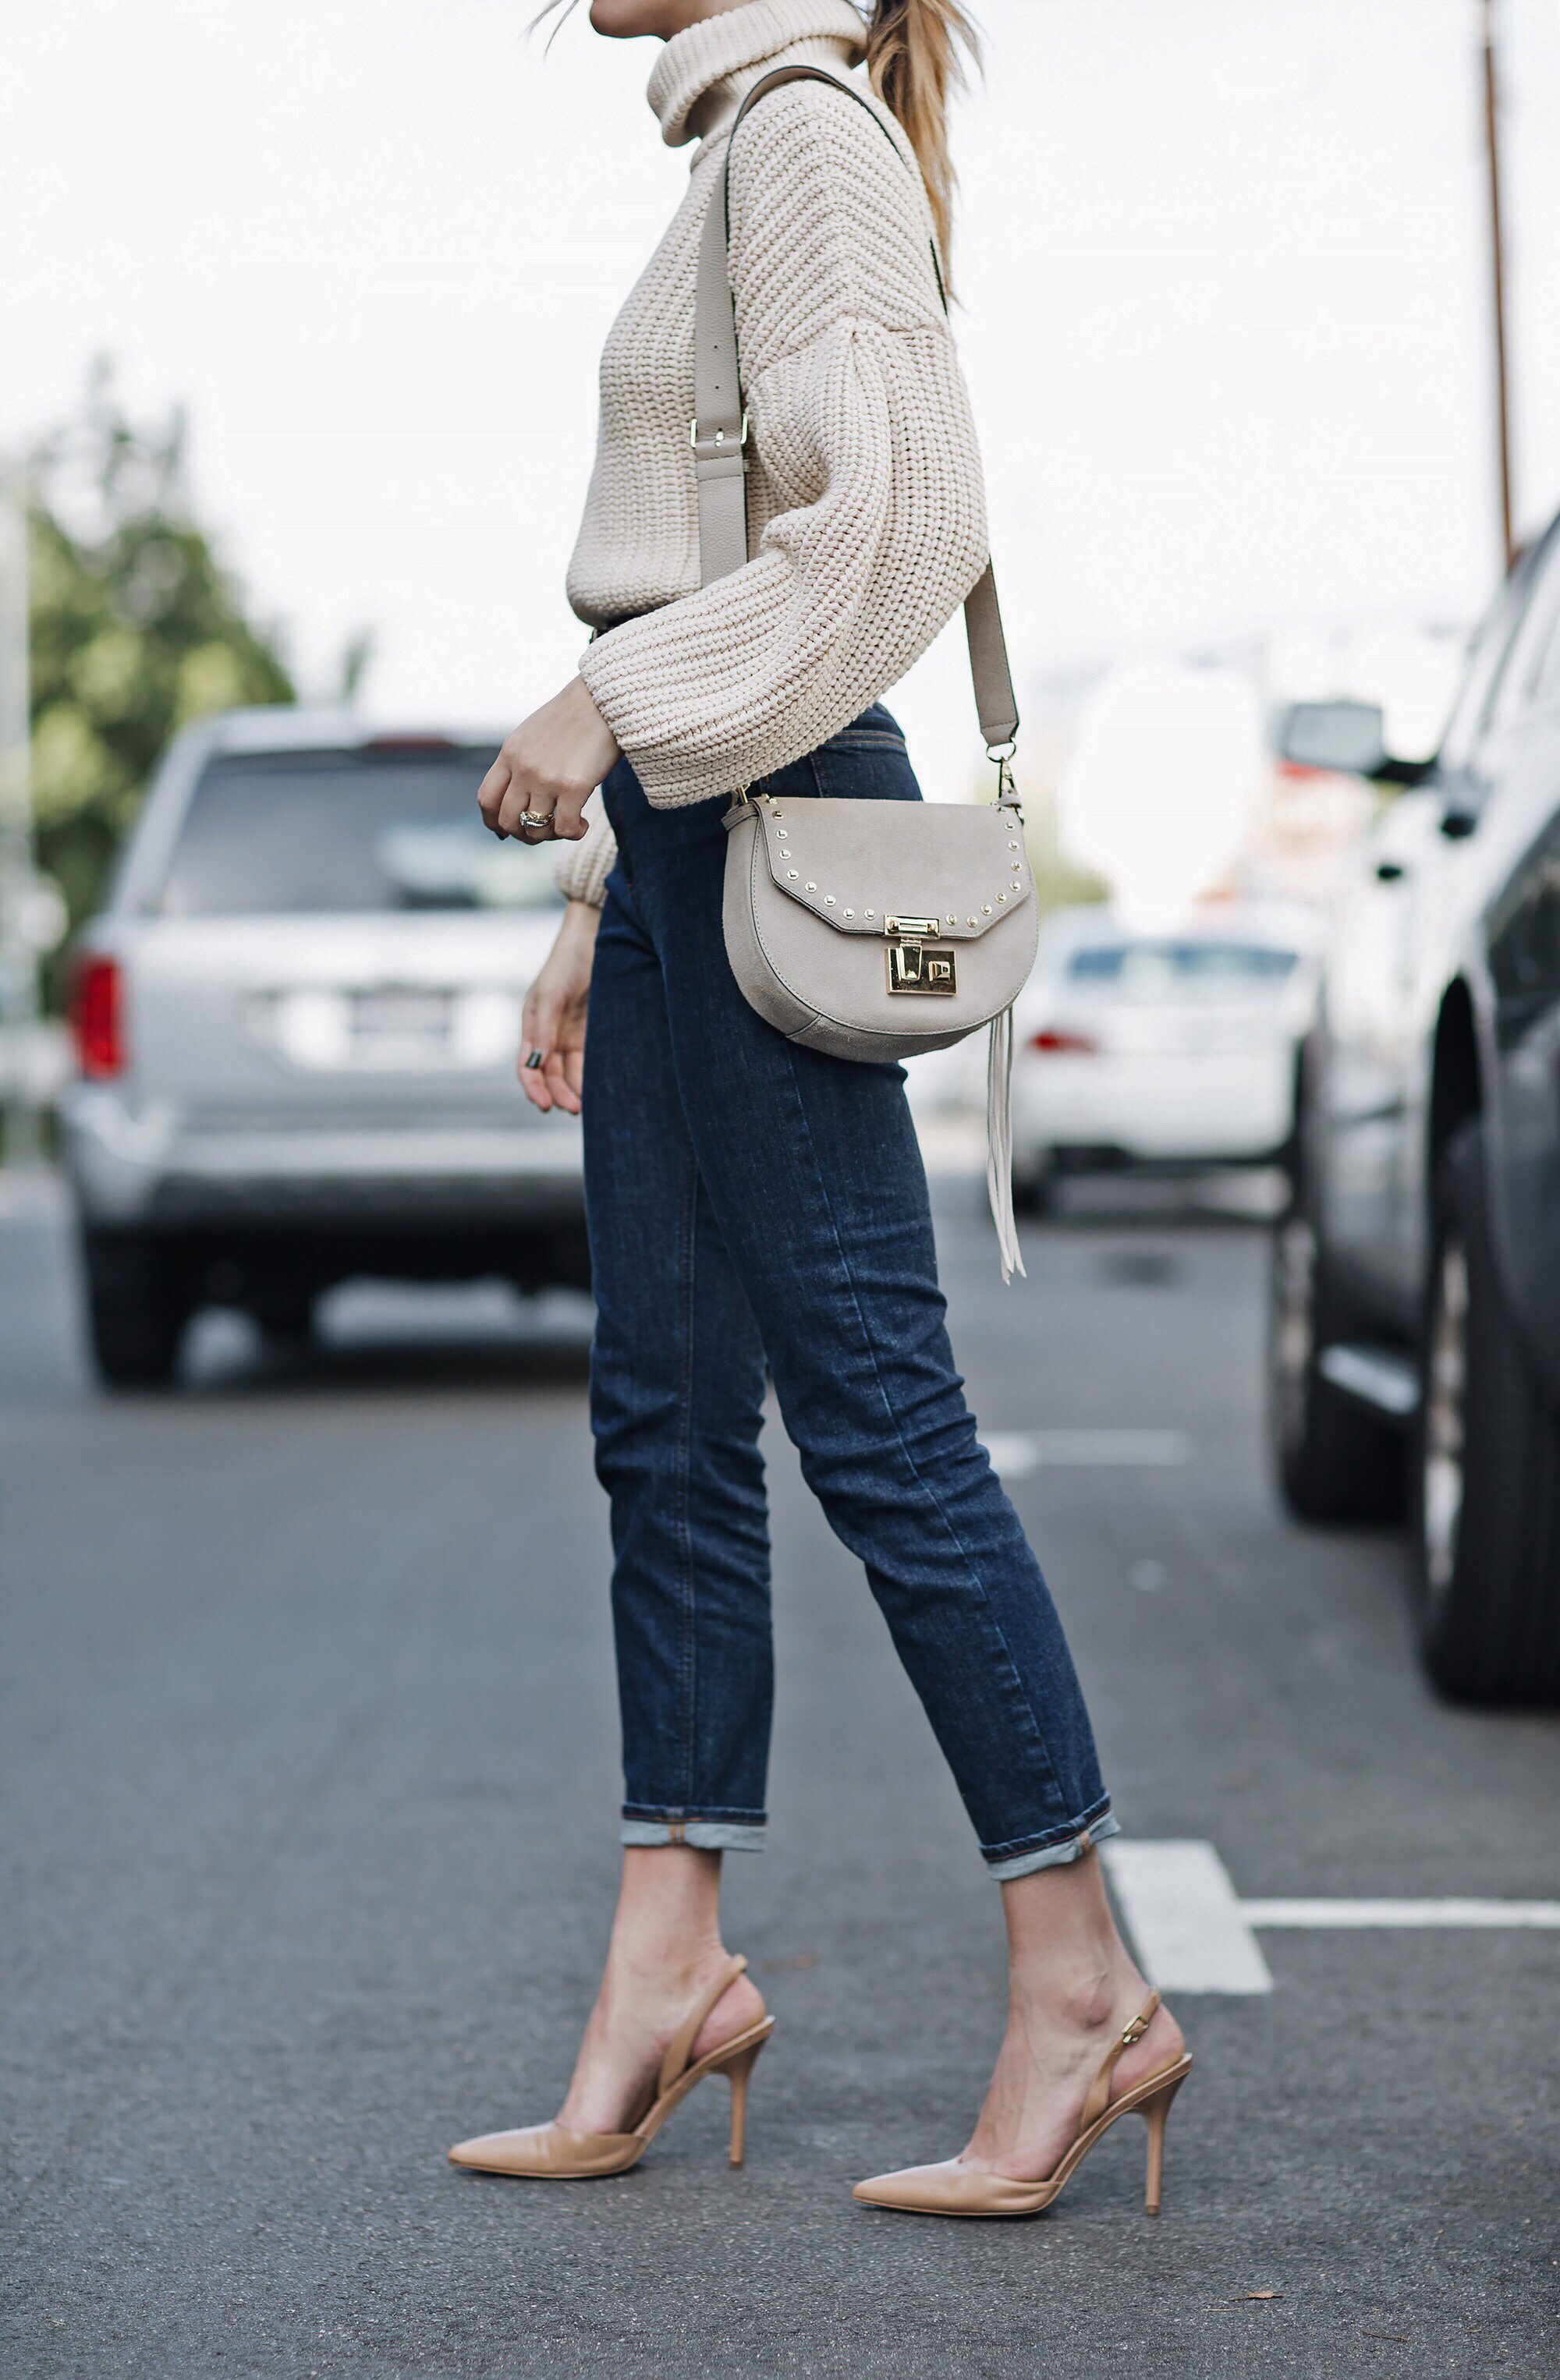 Nude Slingback Pumps Cream Saddle Bag